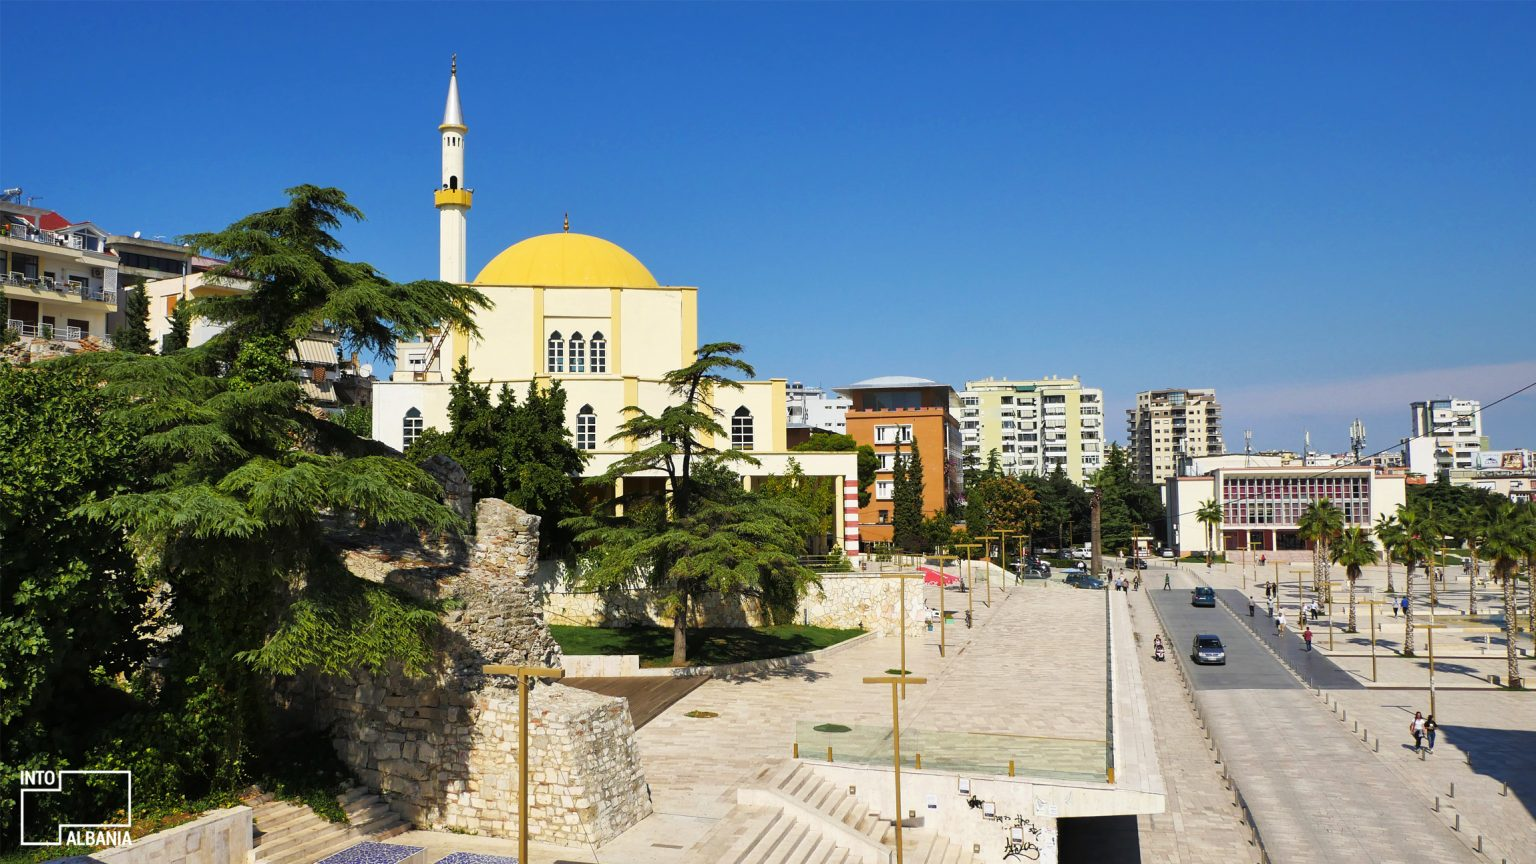 Illyra Square in Durres